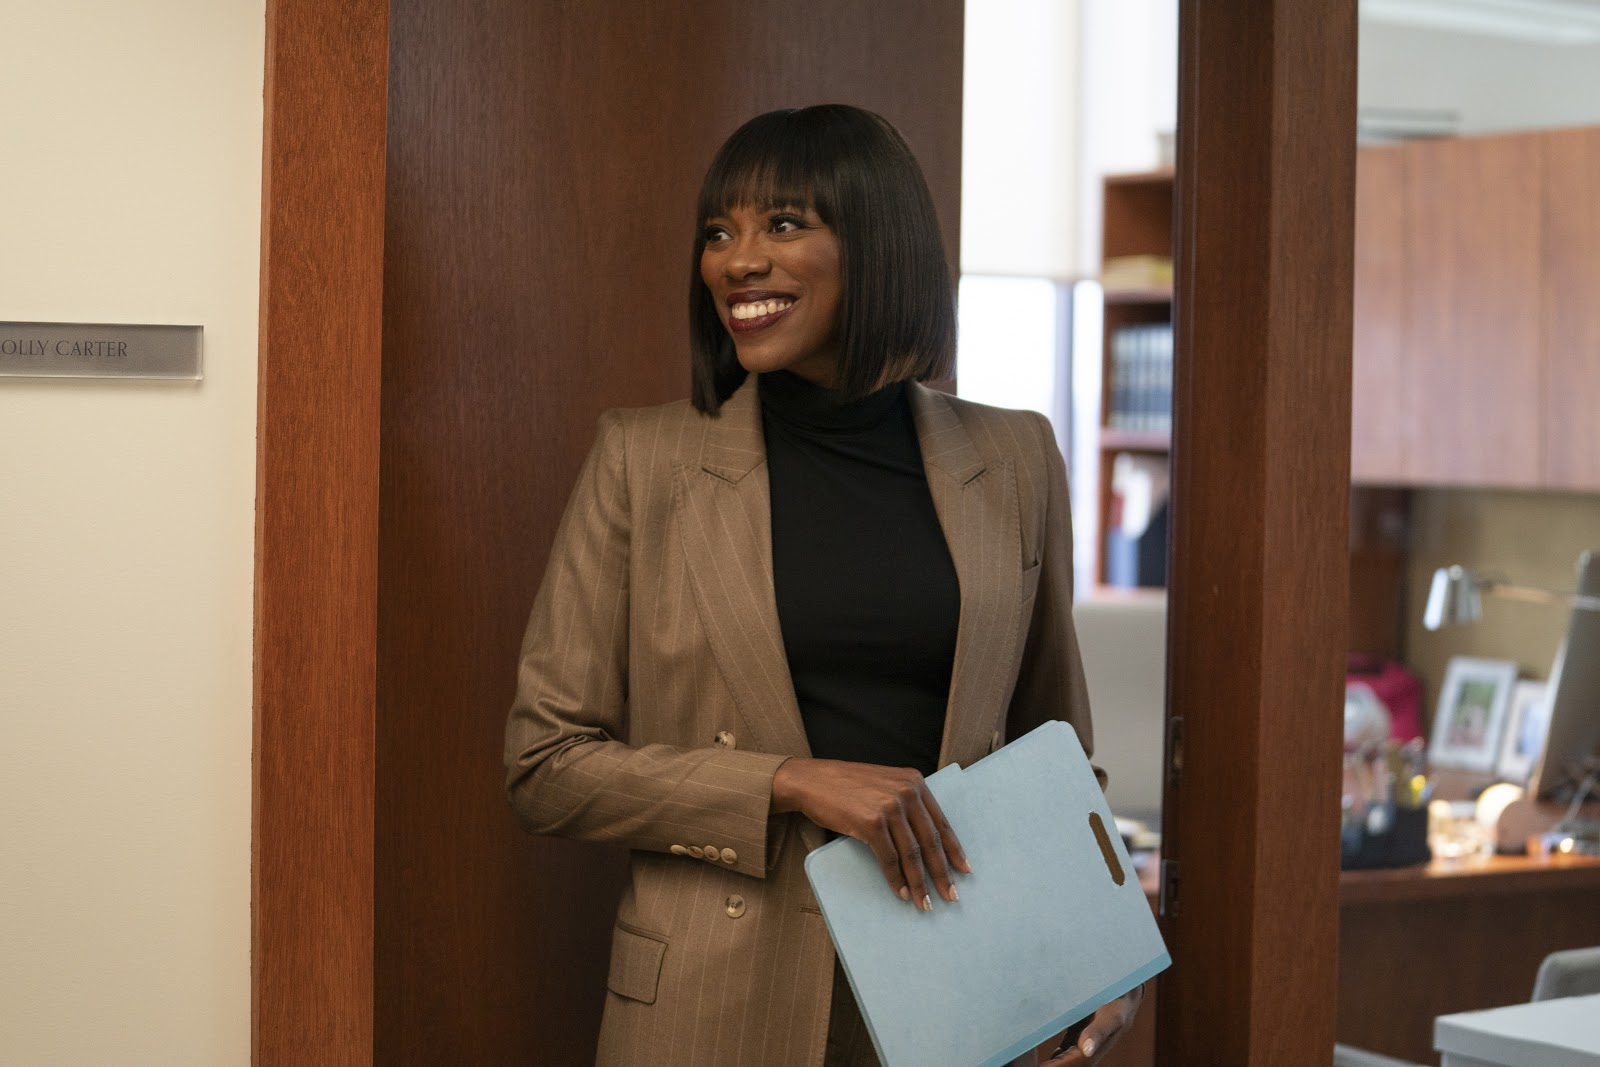 Molly from the HBO show insecure is smiling at the opportunity to move to a new job and create the career that she wants for herself.